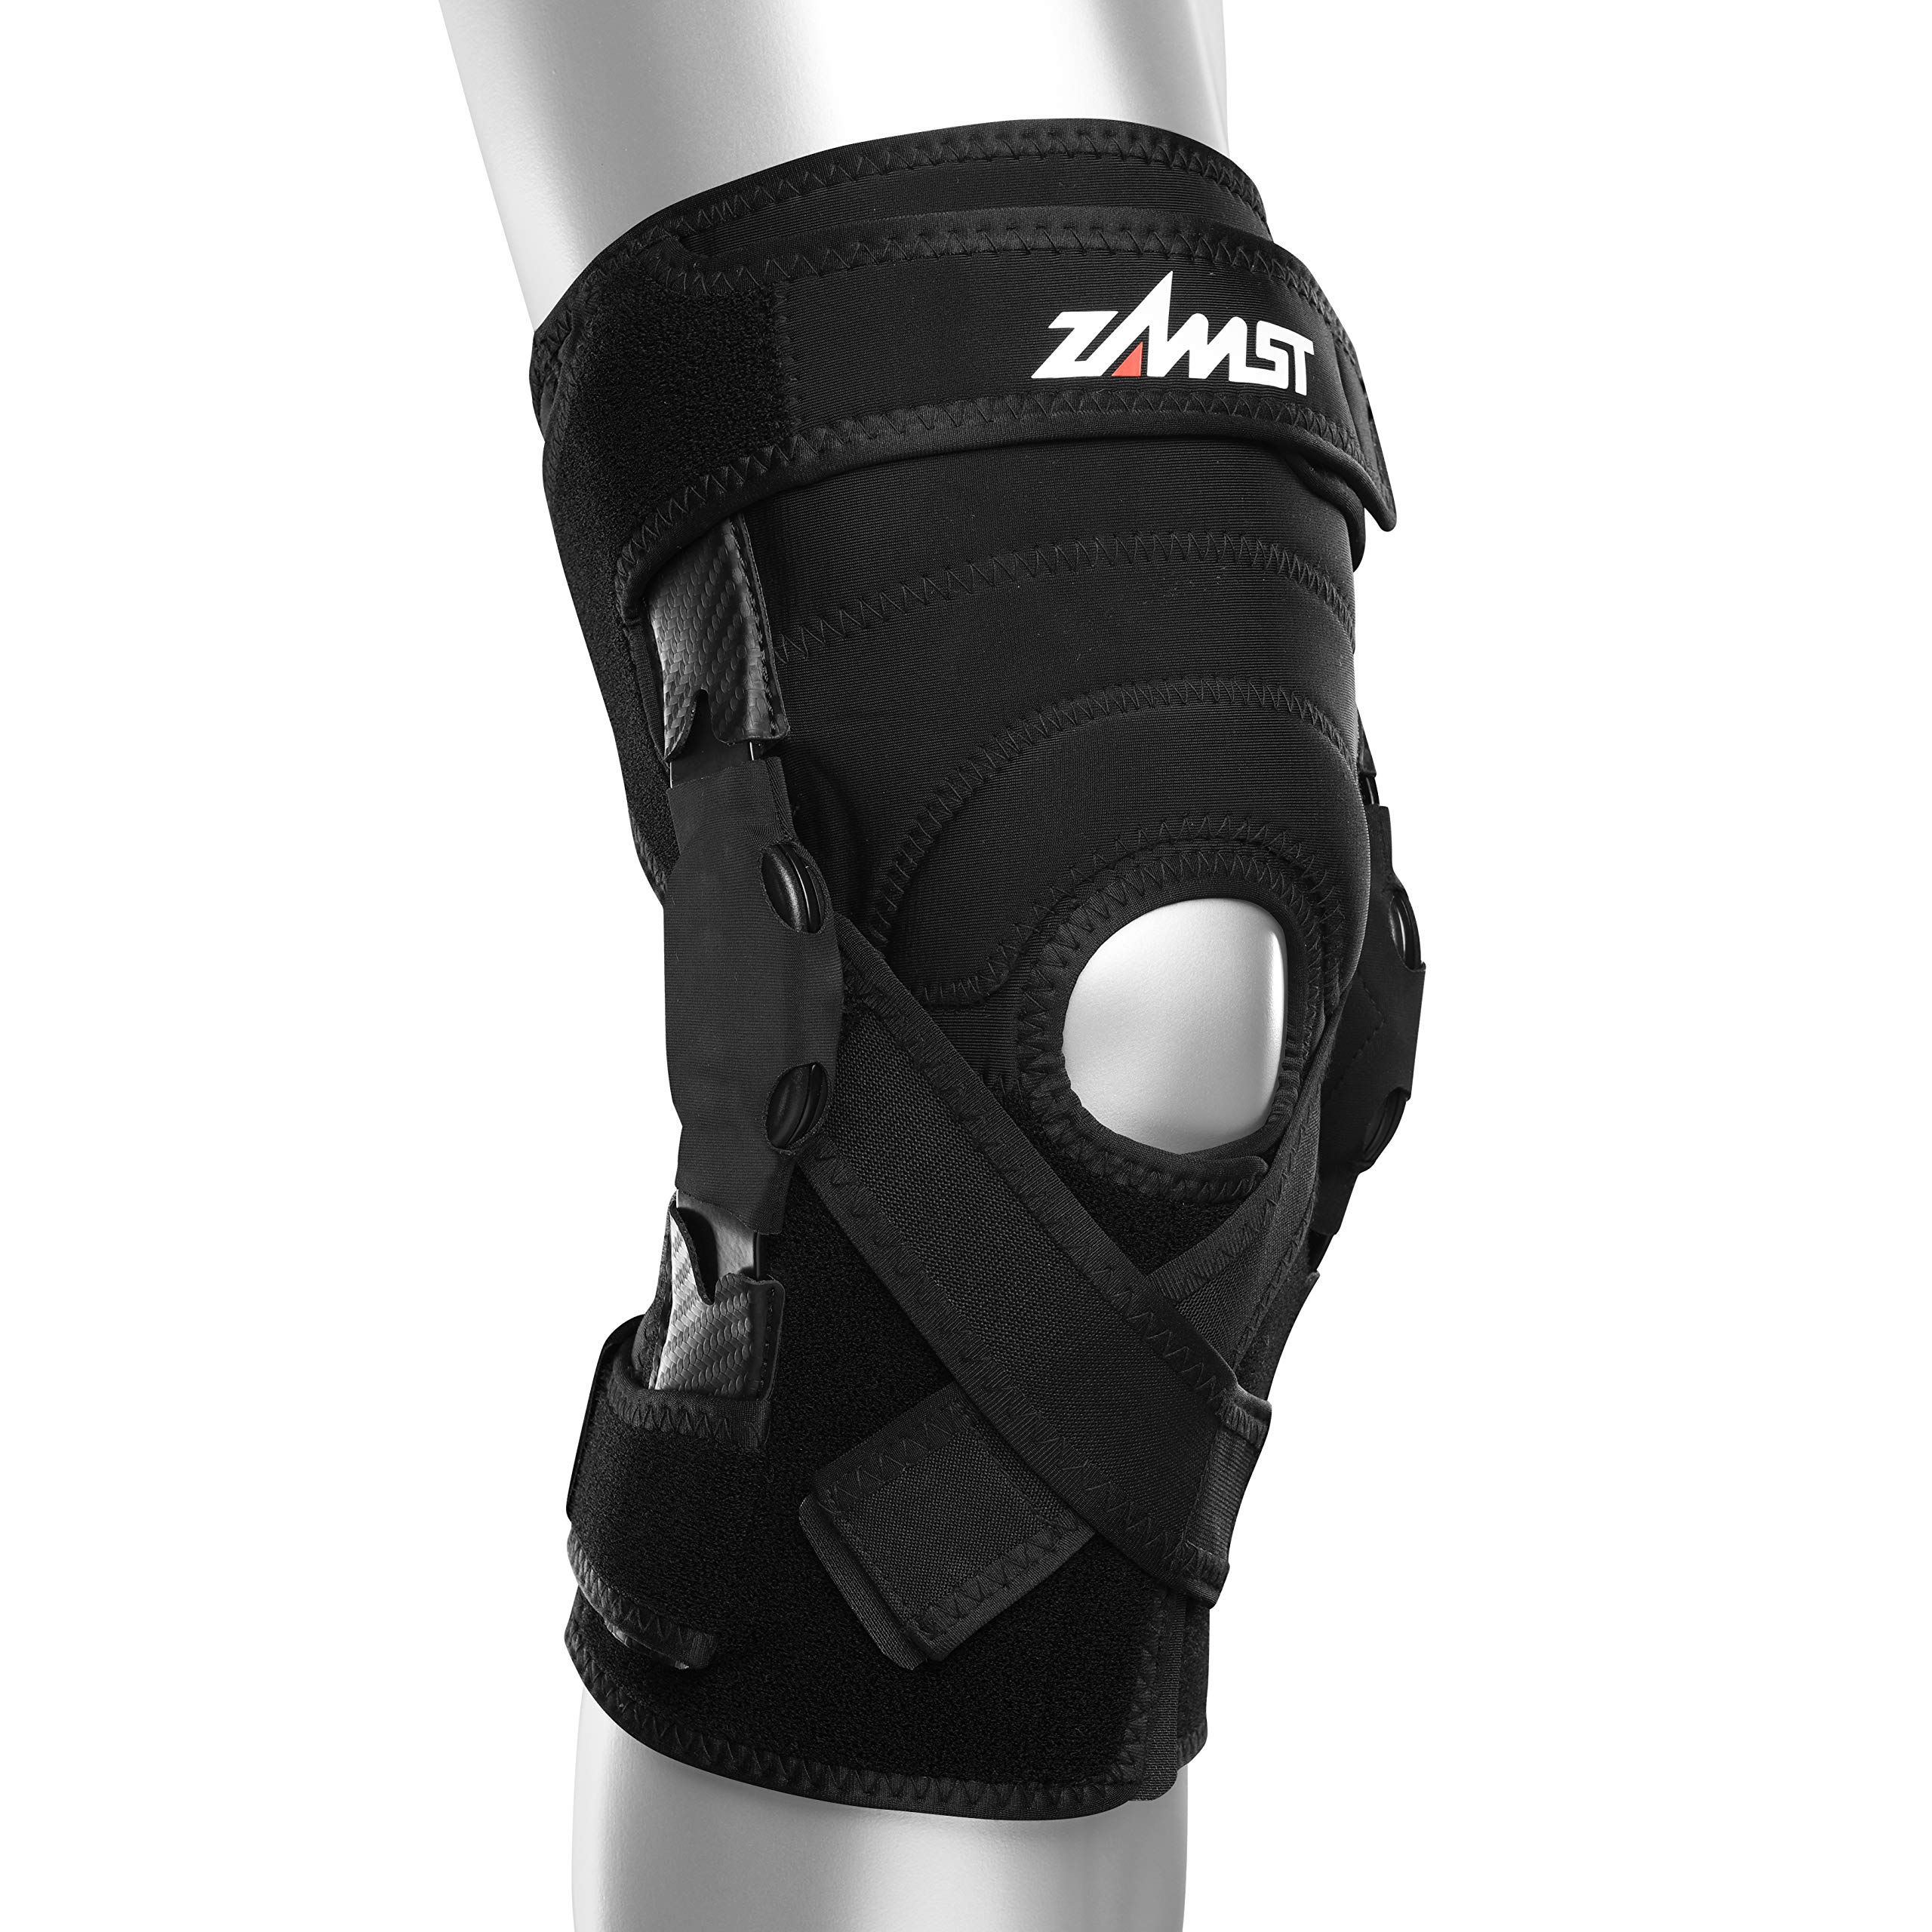 Zamst ZK-X Hinged Knee Brace Support, Large